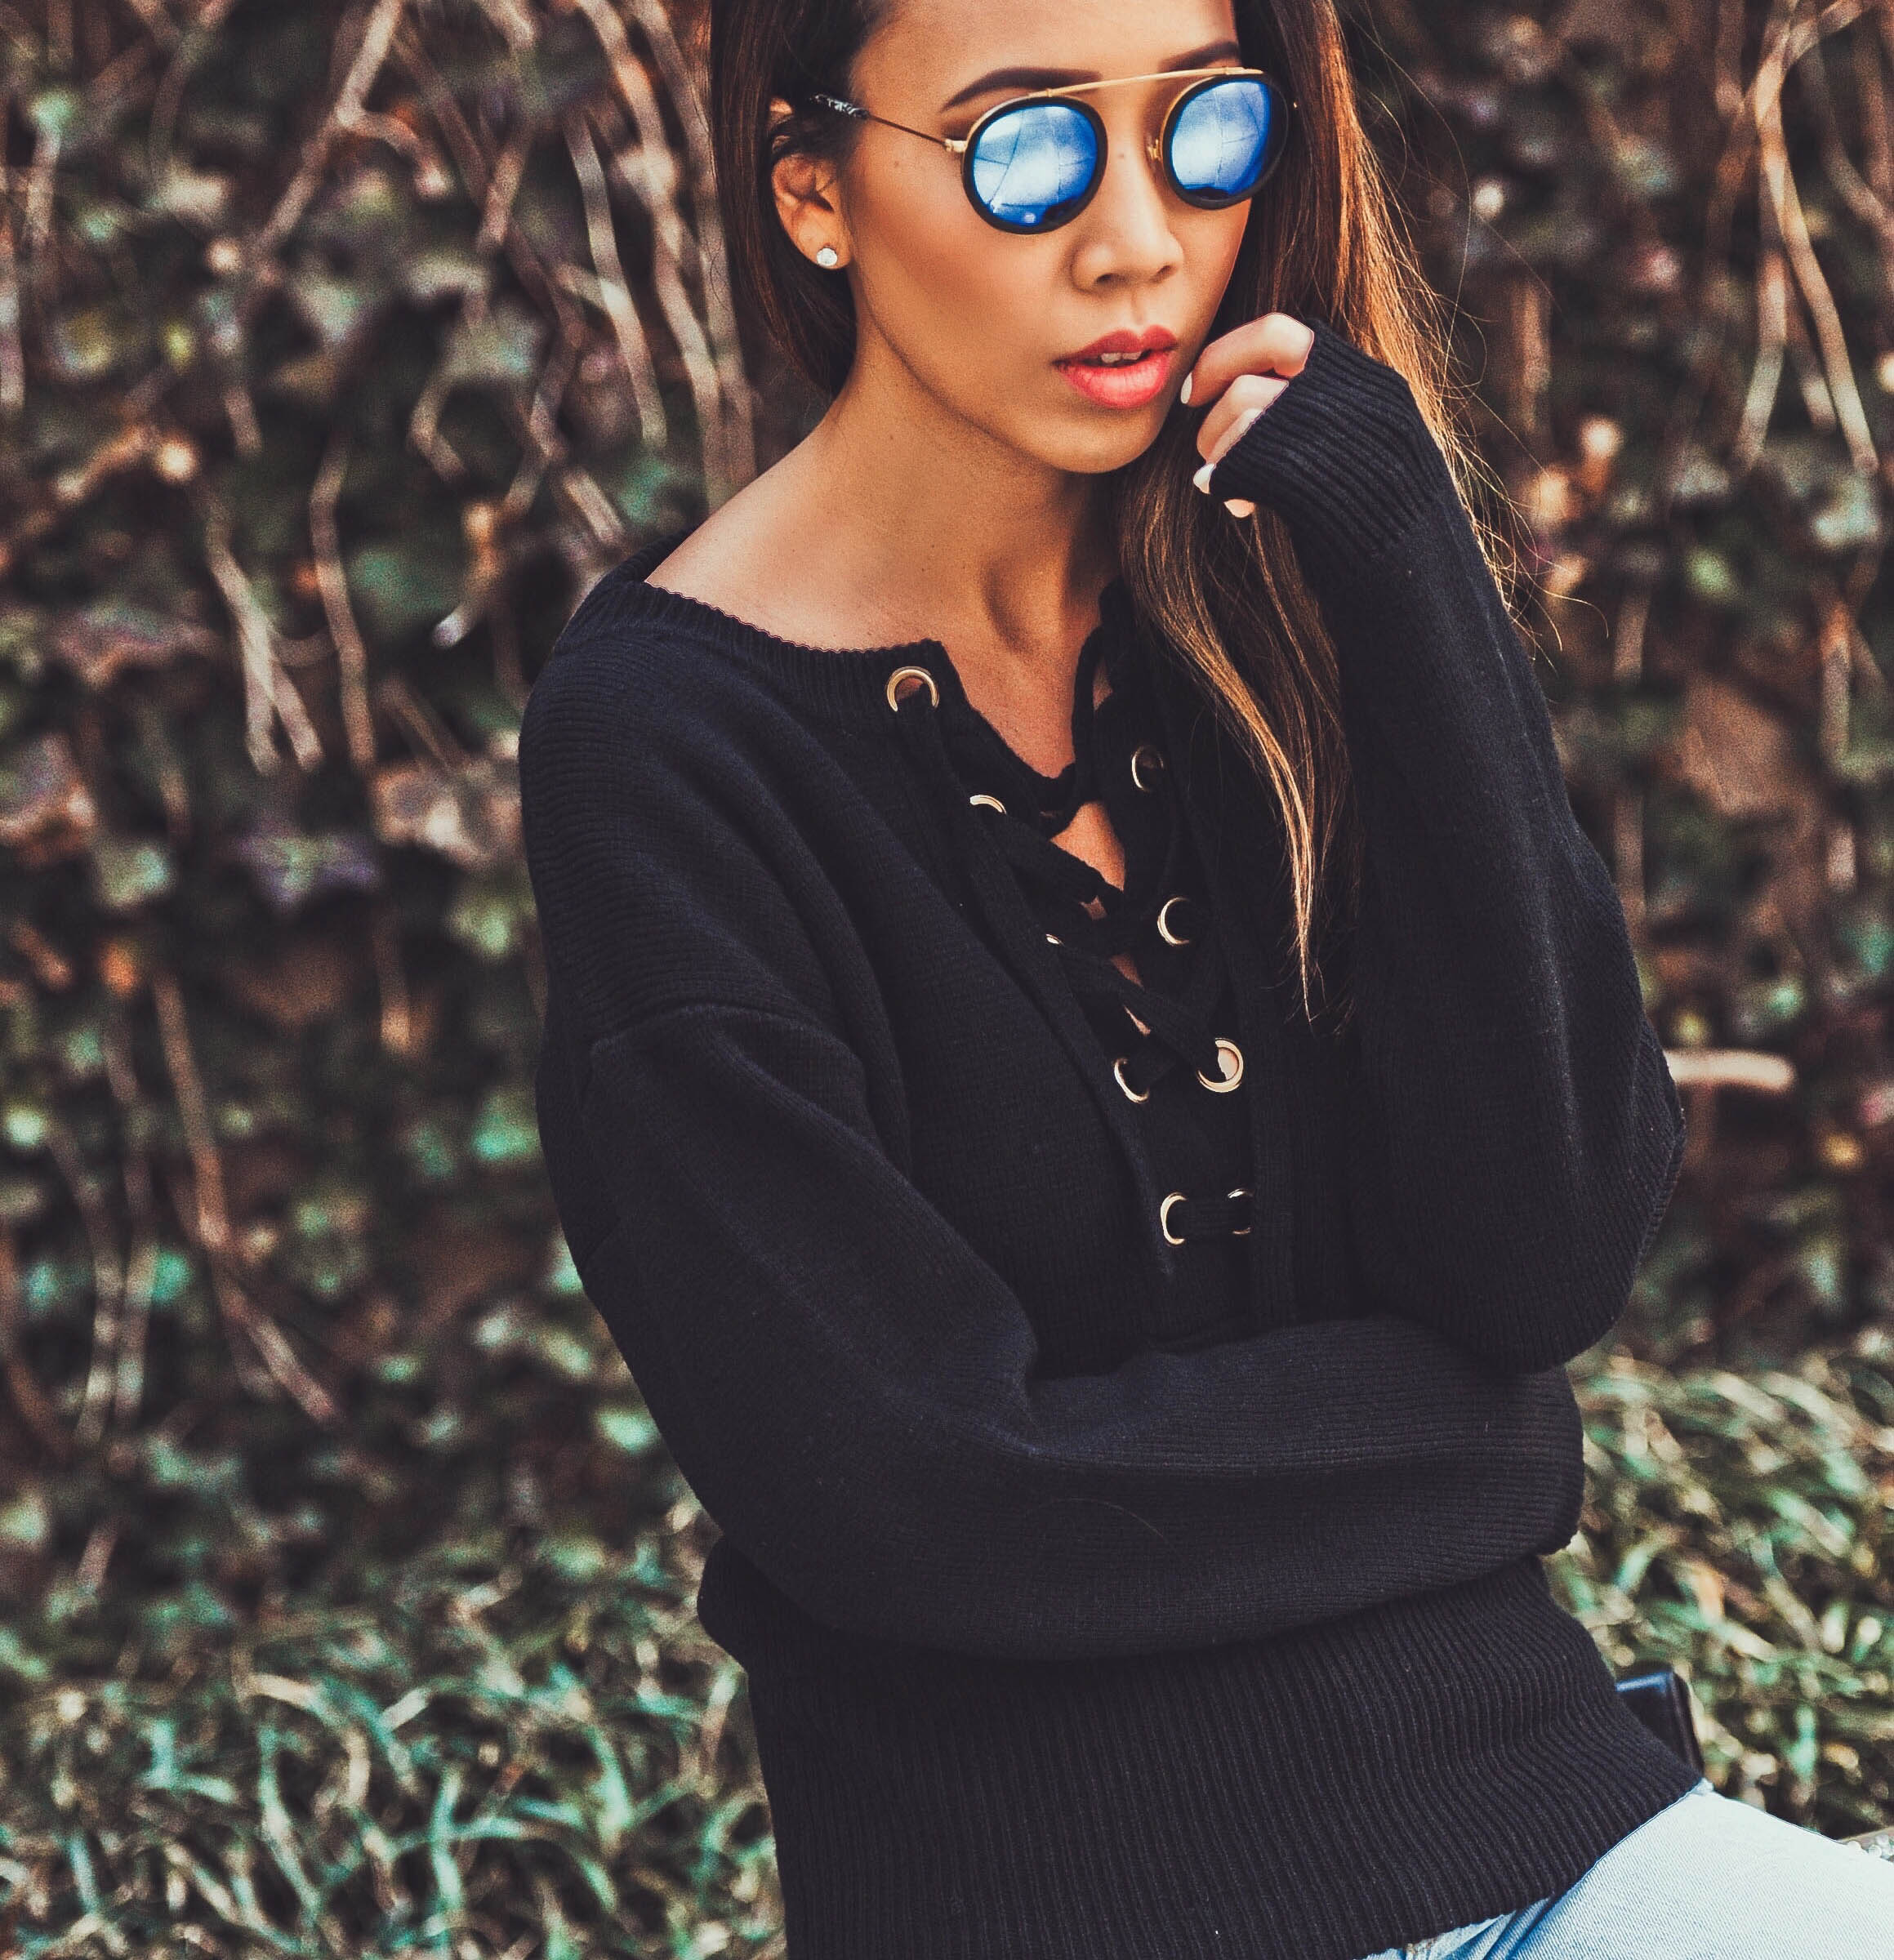 4e37ad1c55c The 3 Most Popular Sunglasses To Wear This Summer - WANDER x LUXE